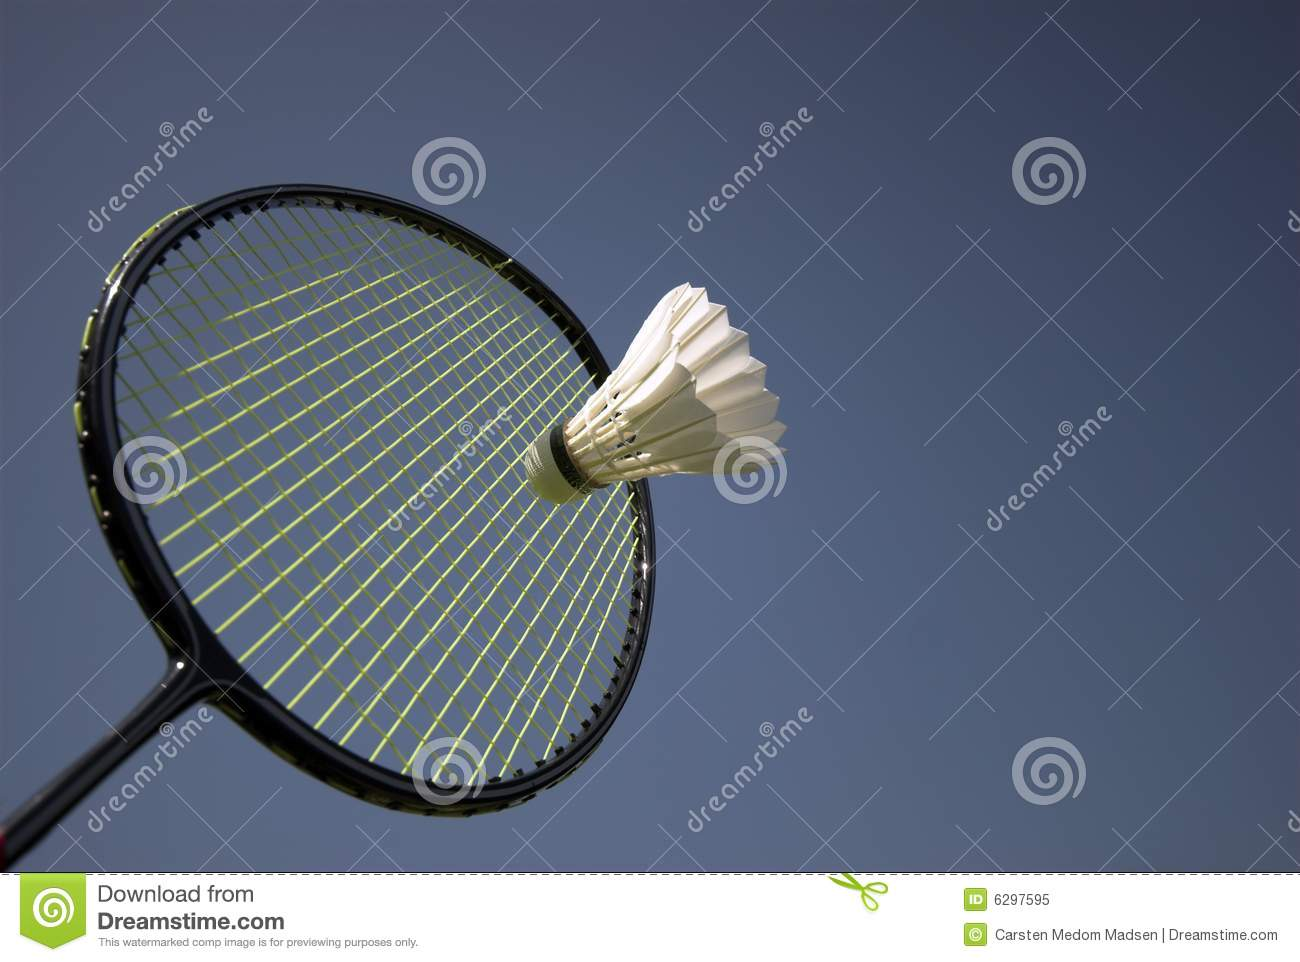 Badminton Action